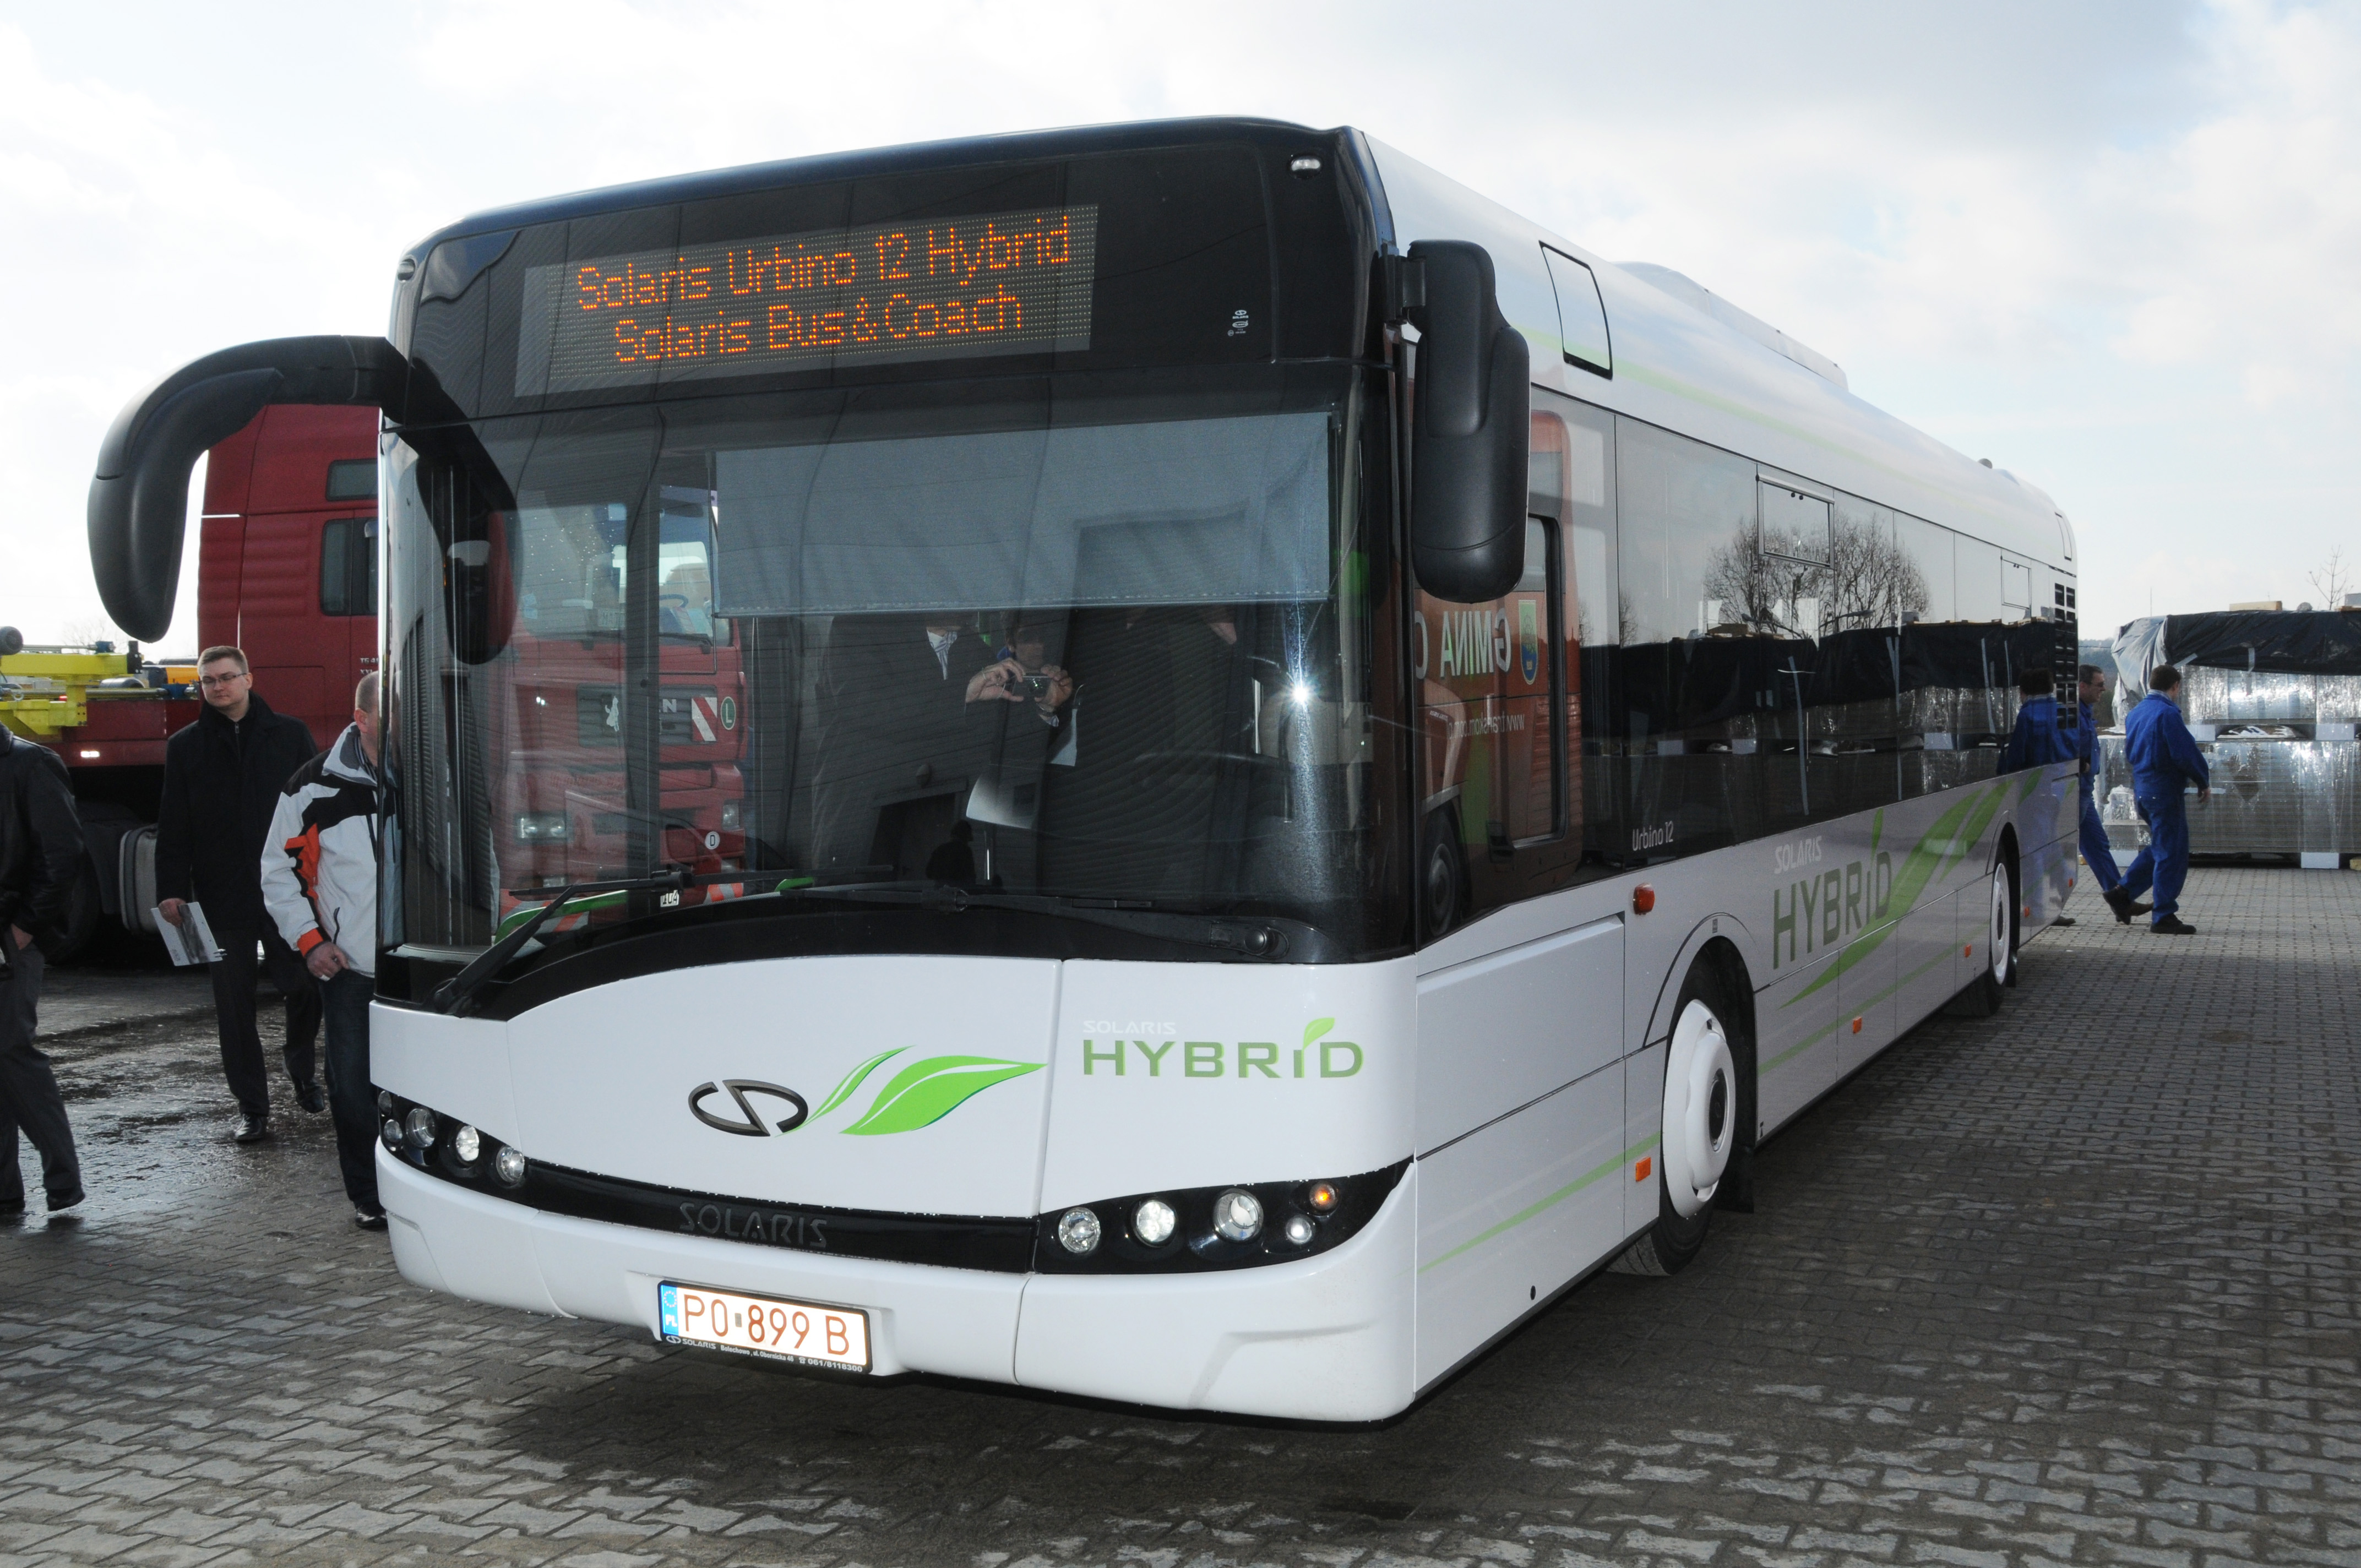 Solaris Urbino 12 Hybrid | Flickr - Photo Sharing!